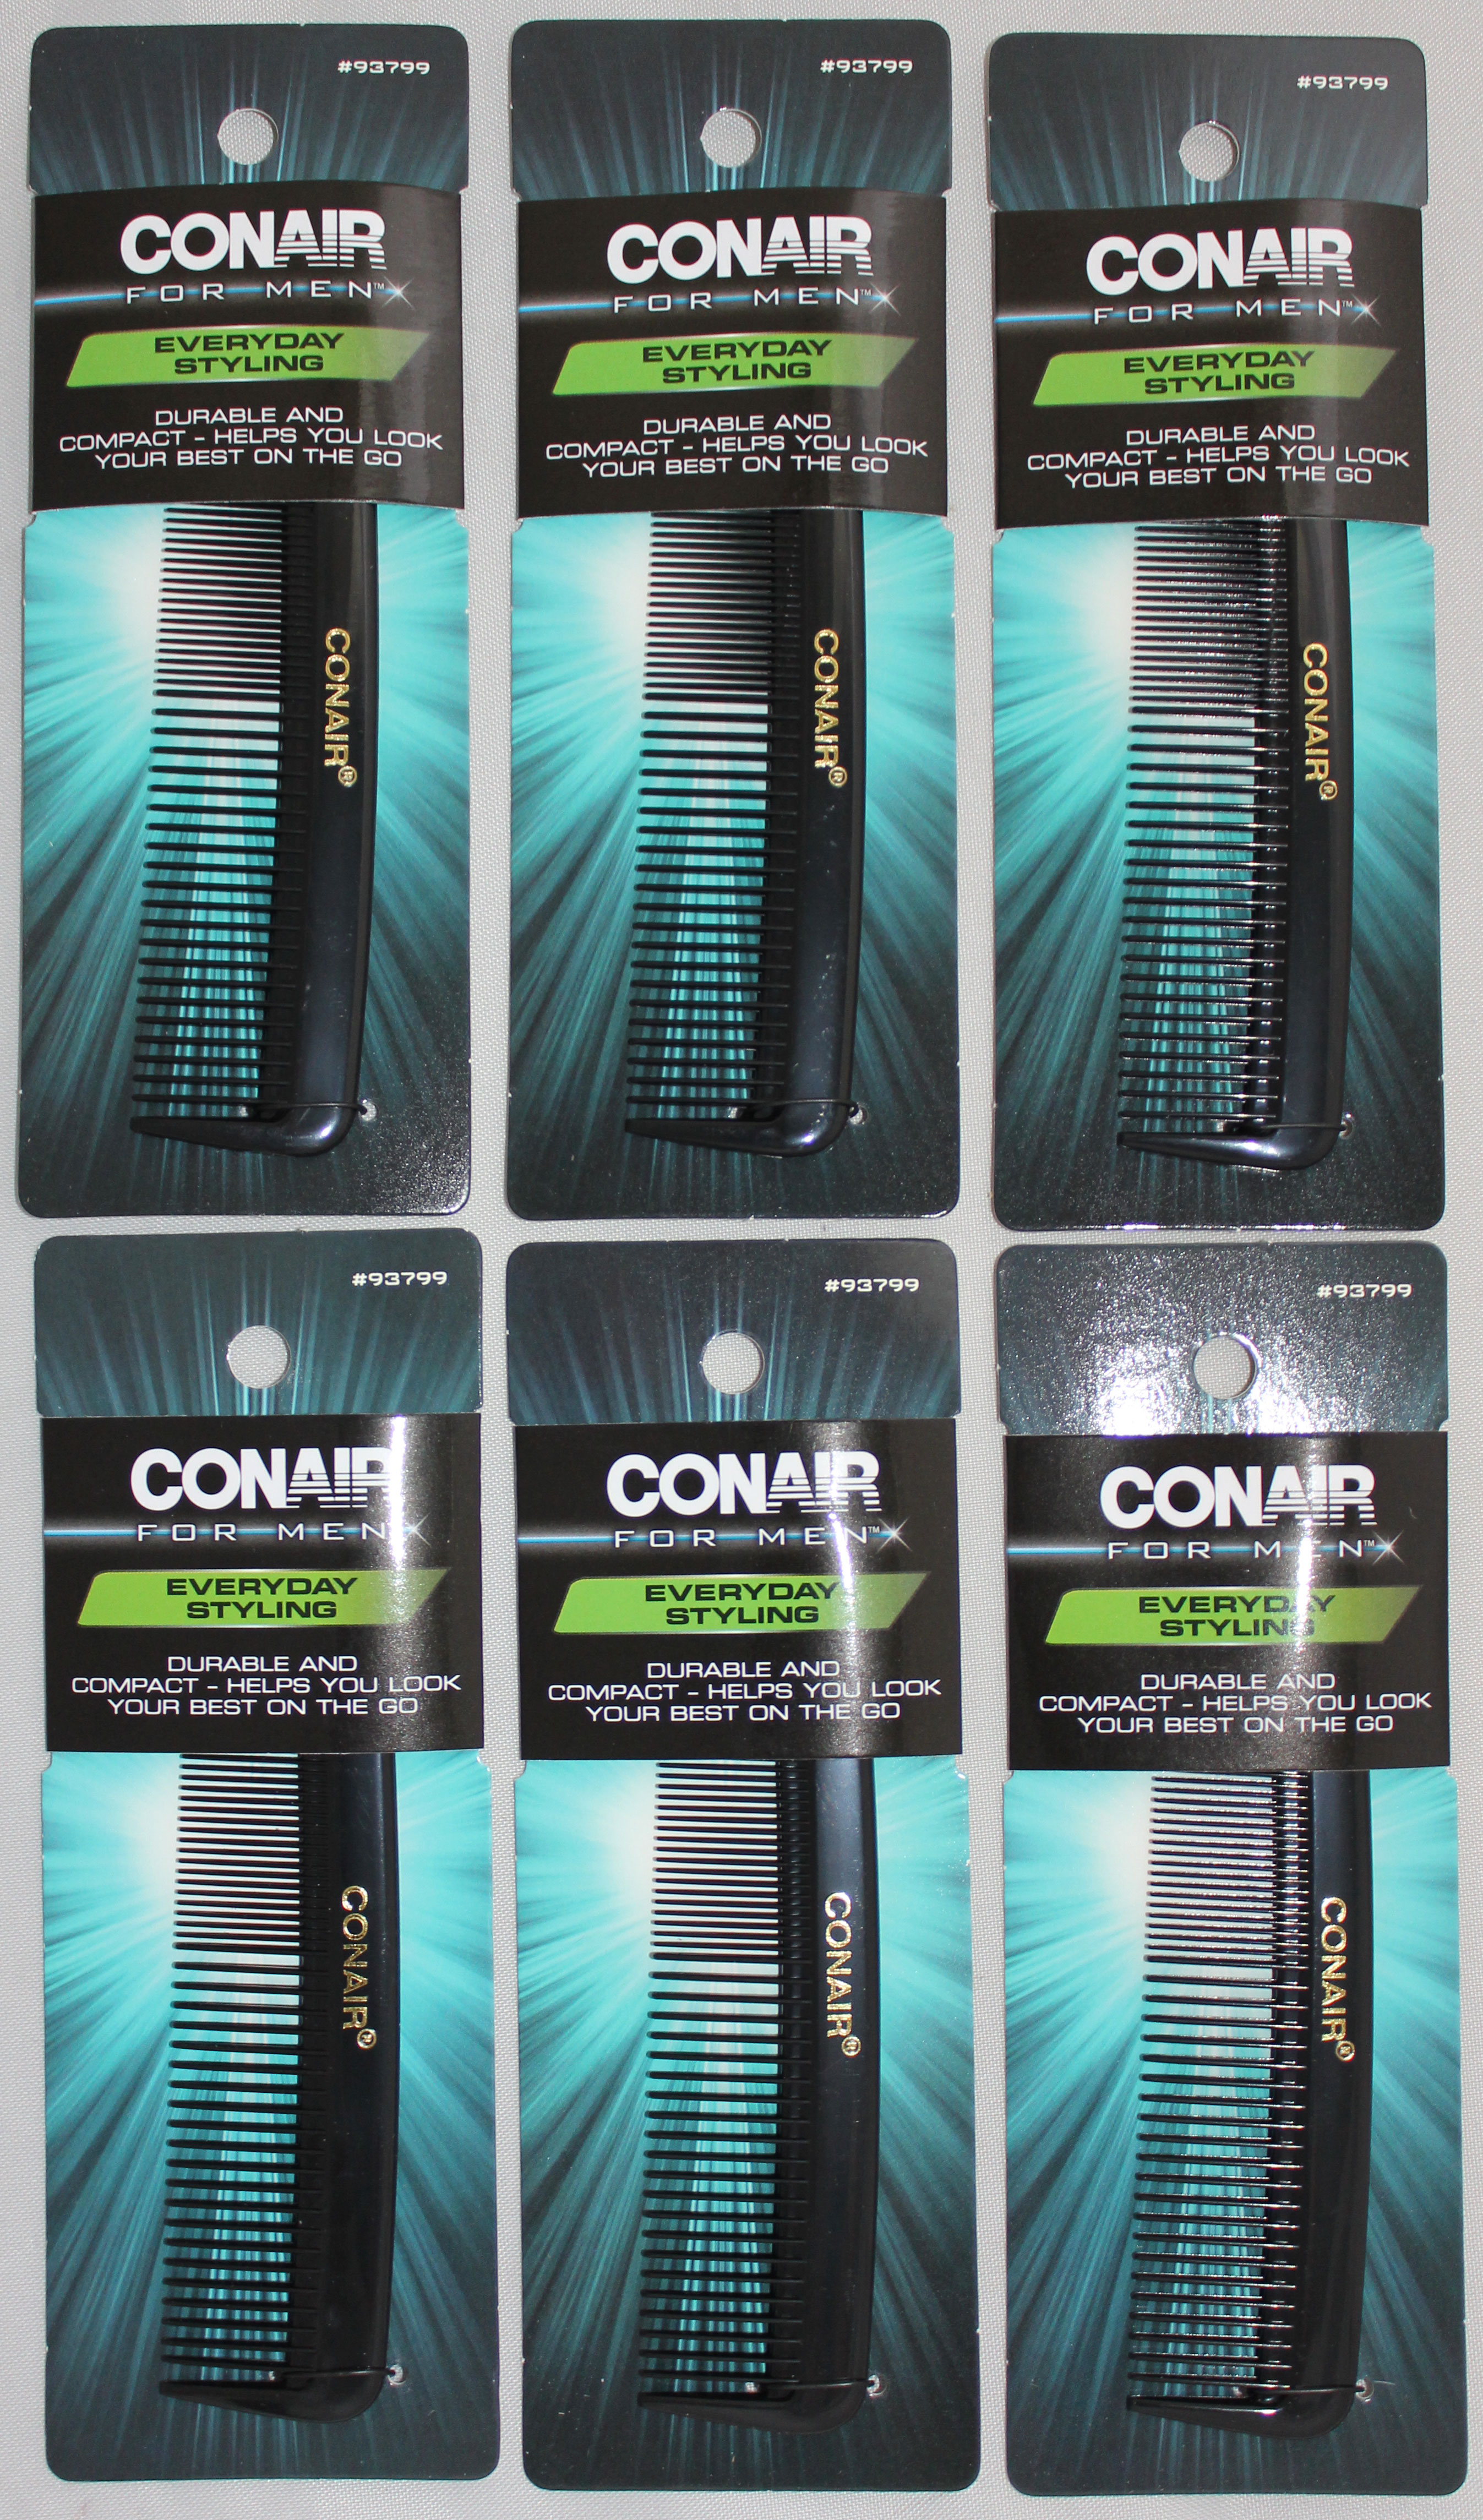 Conair Men's Single Pocket Comb 1 count